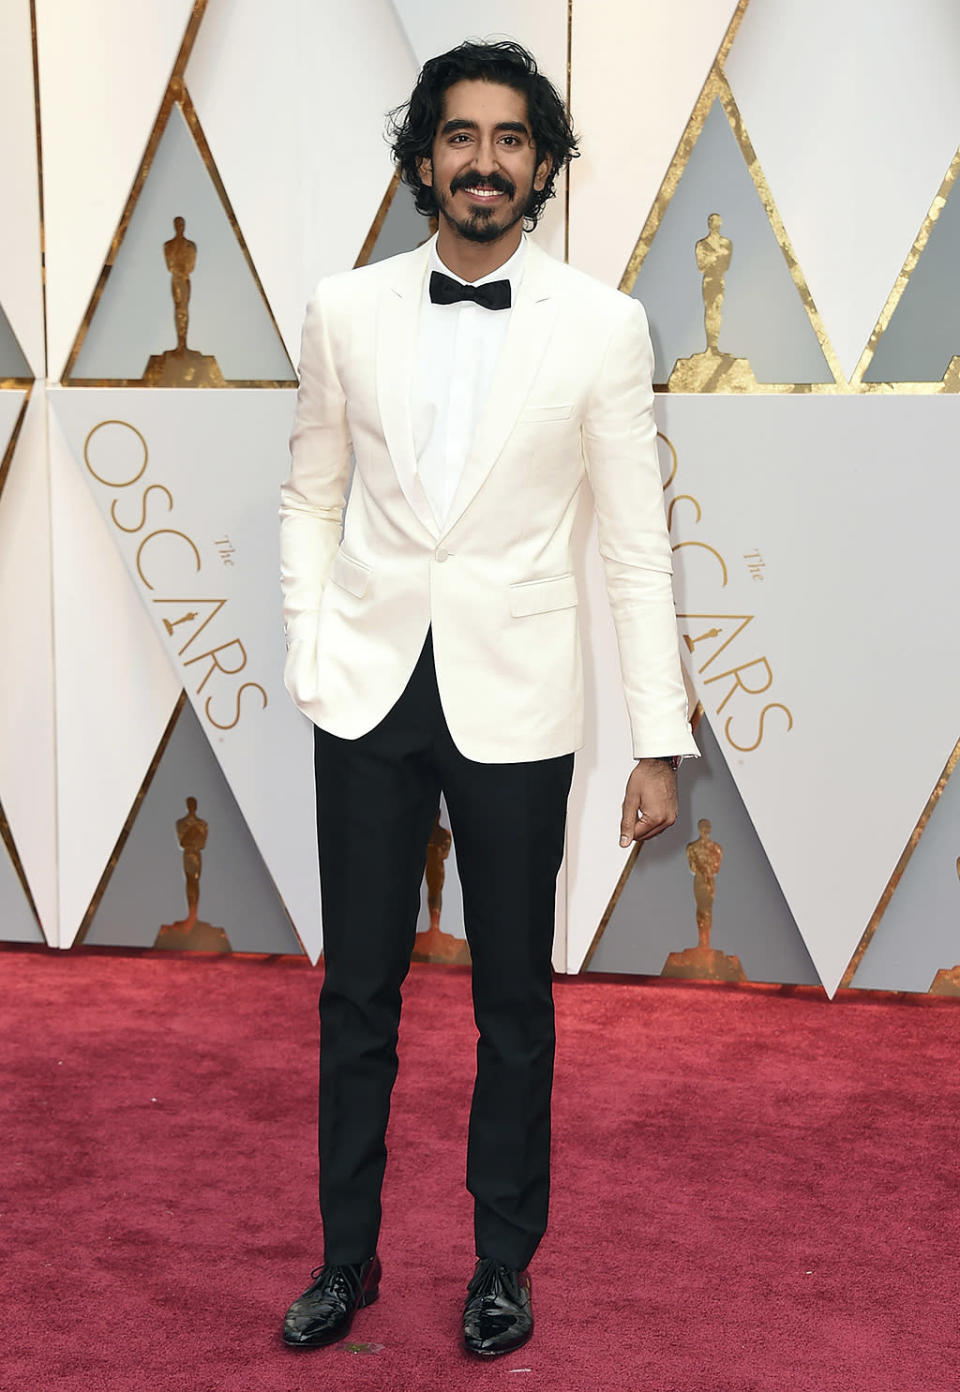 <p>Dev Patel arrives at the Oscars on Feb. 26, 2017, at the Dolby Theatre in Los Angeles. (Photo by Jordan Strauss/Invision/AP) </p>